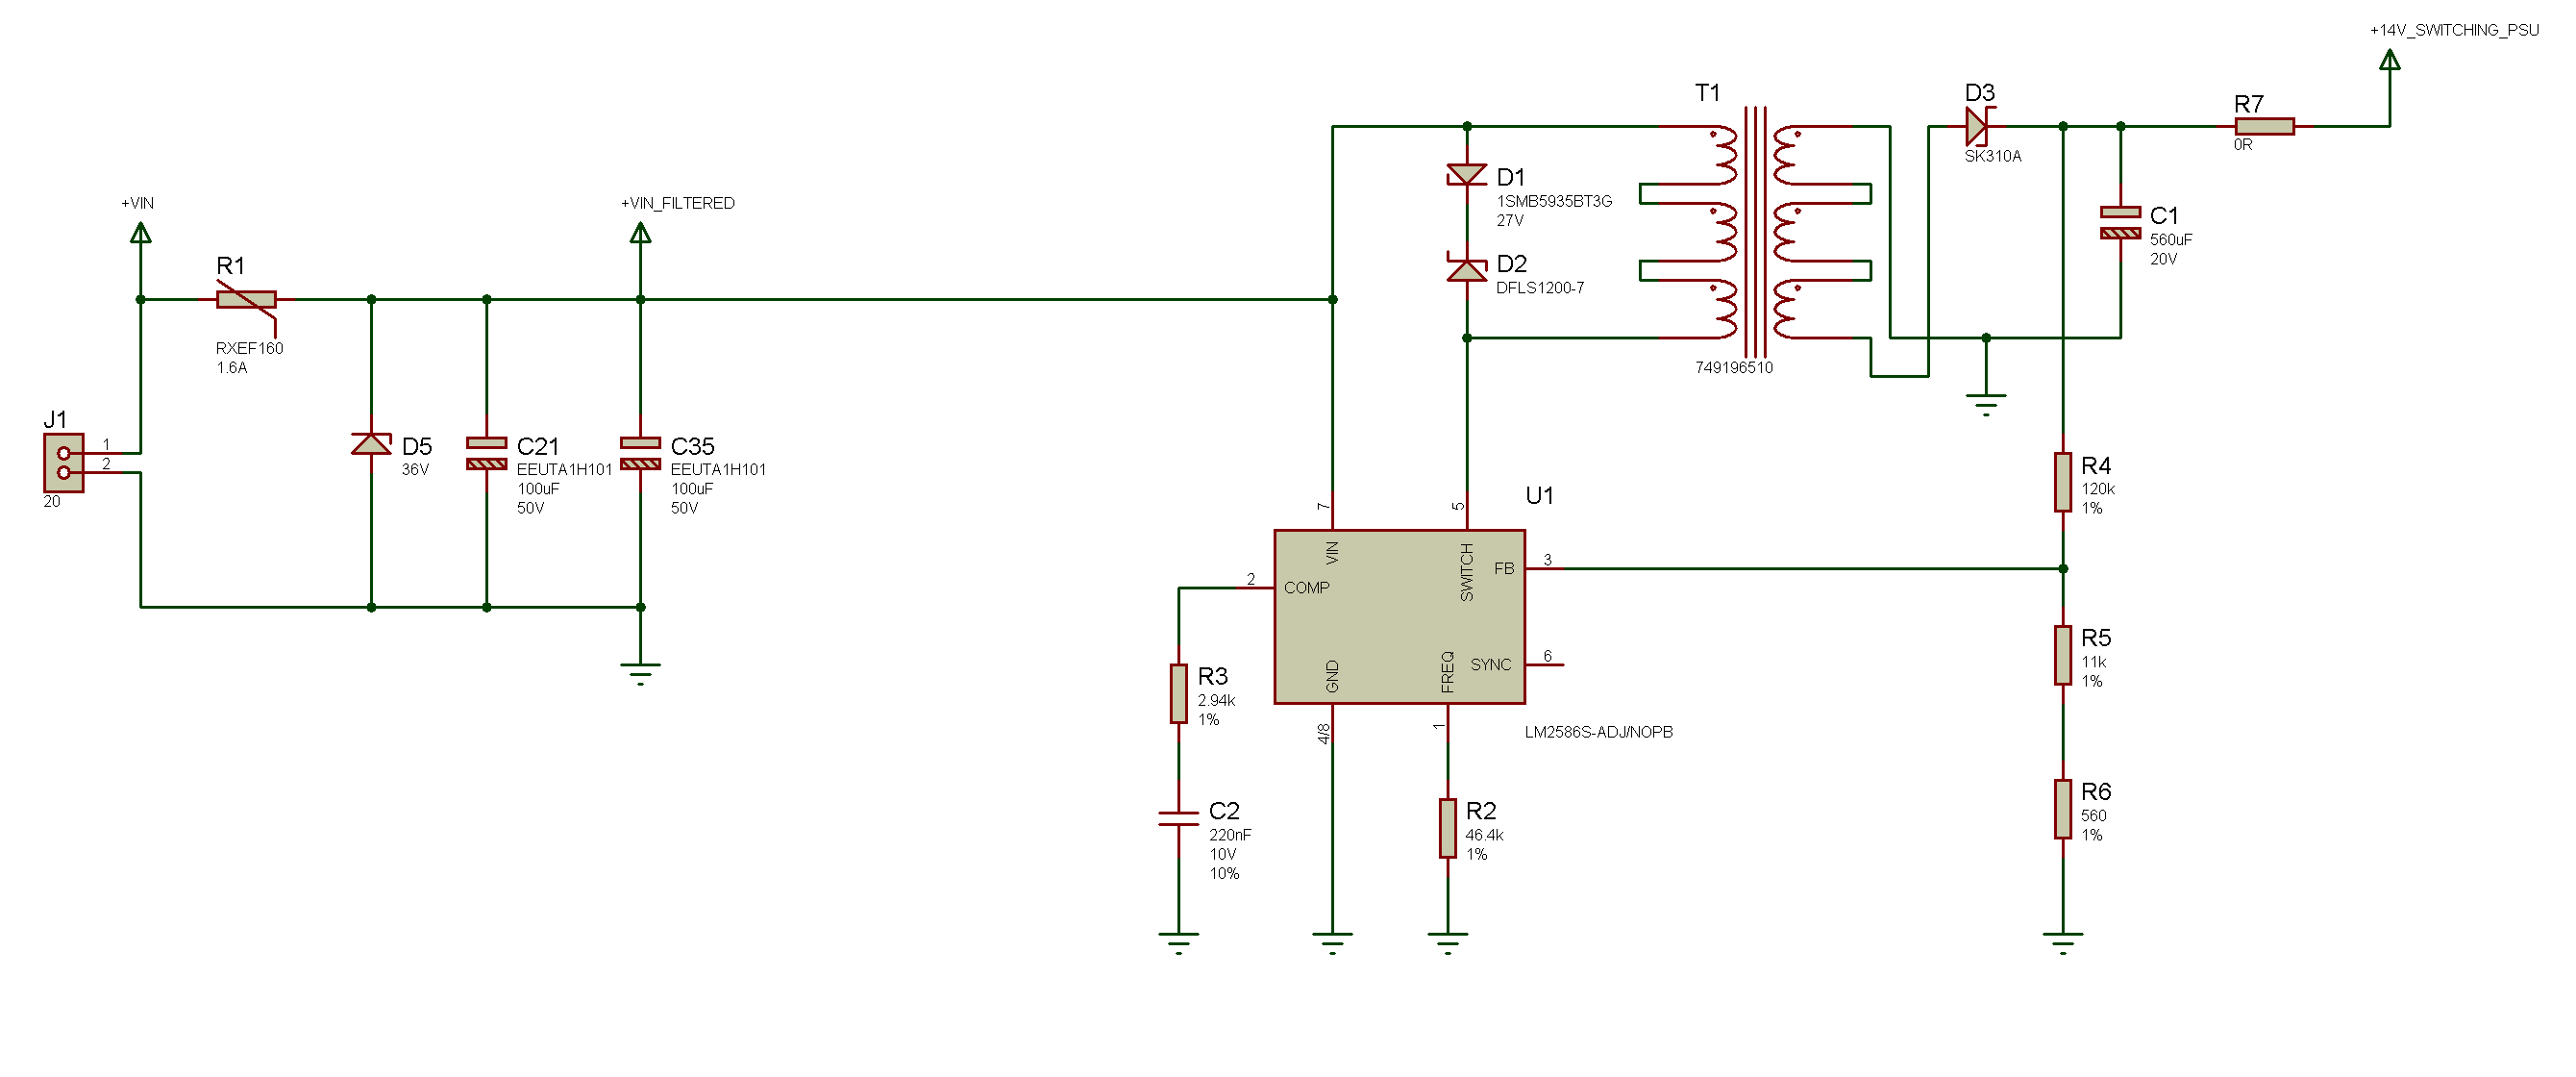 How to wire up flyback transformer with multiple windings